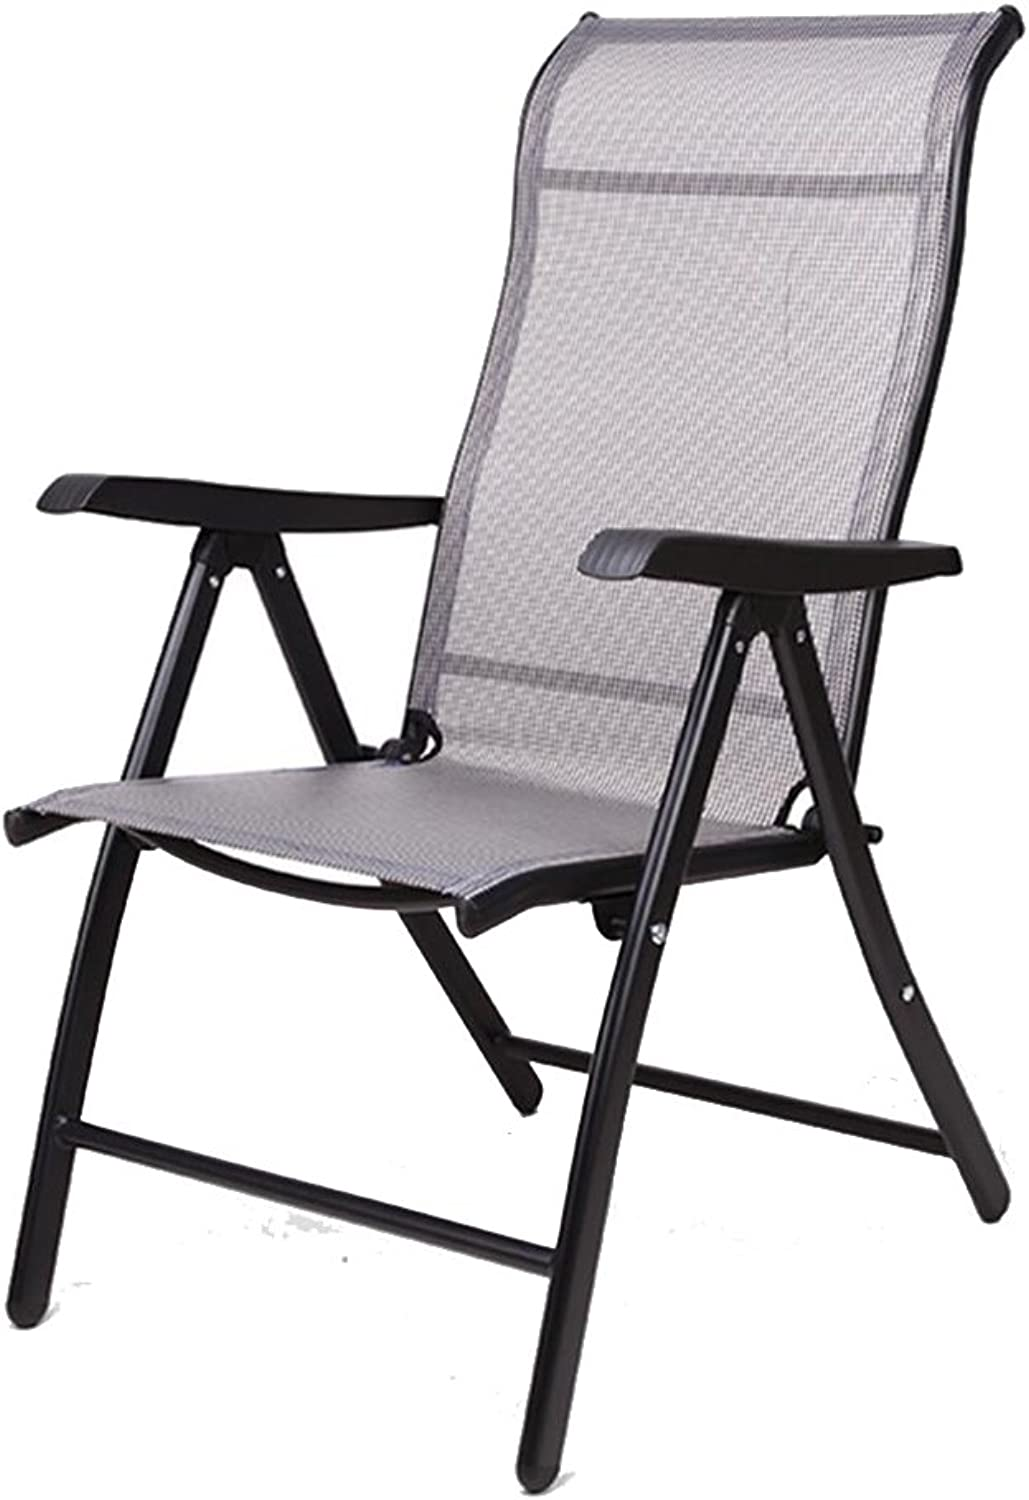 KTYXGKL Folding Chair Home Recliner Lunchtime Nap Chair Office Happy Lazy Backrest Beach Chair Folding Chair (color   Black)